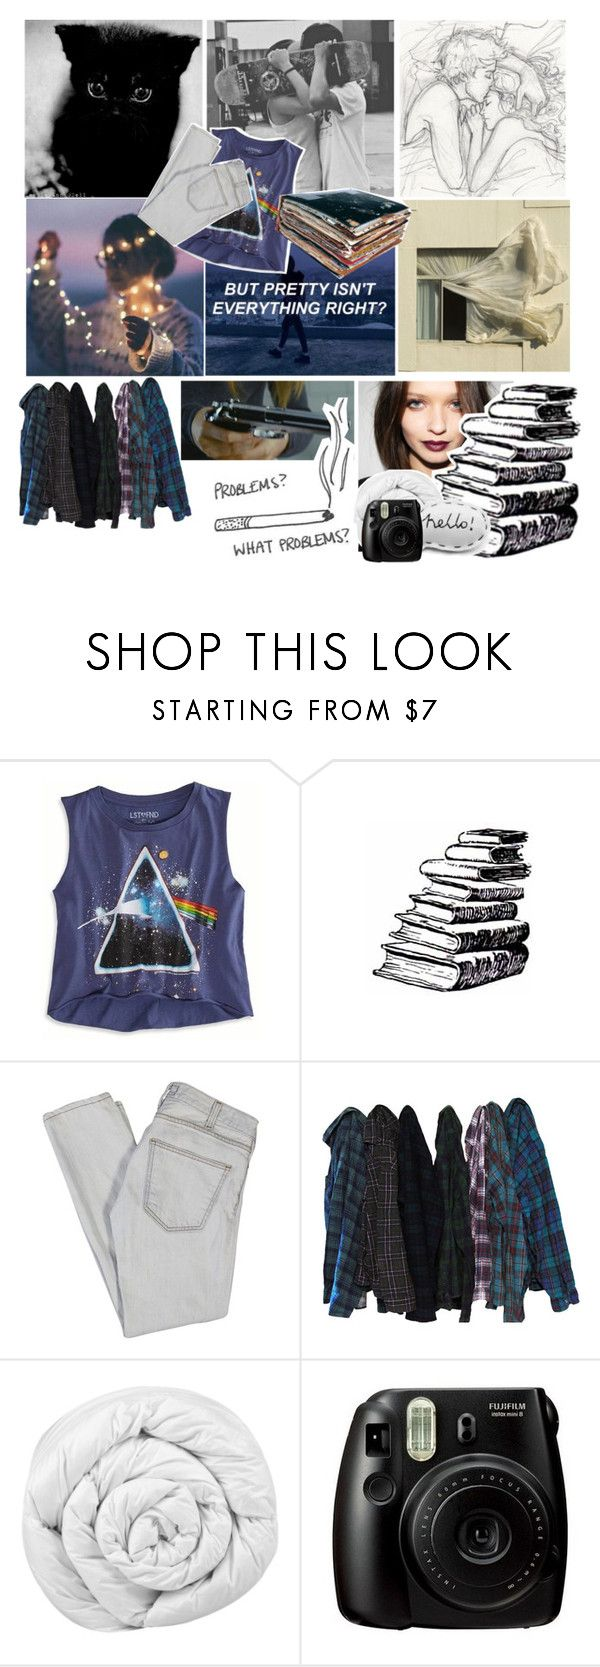 """life"" by queen-of-darkness-1 ❤ liked on Polyvore featuring Prada, American Eagle Outfitters, Current/Elliott, Brinkhaus and Fujifilm"